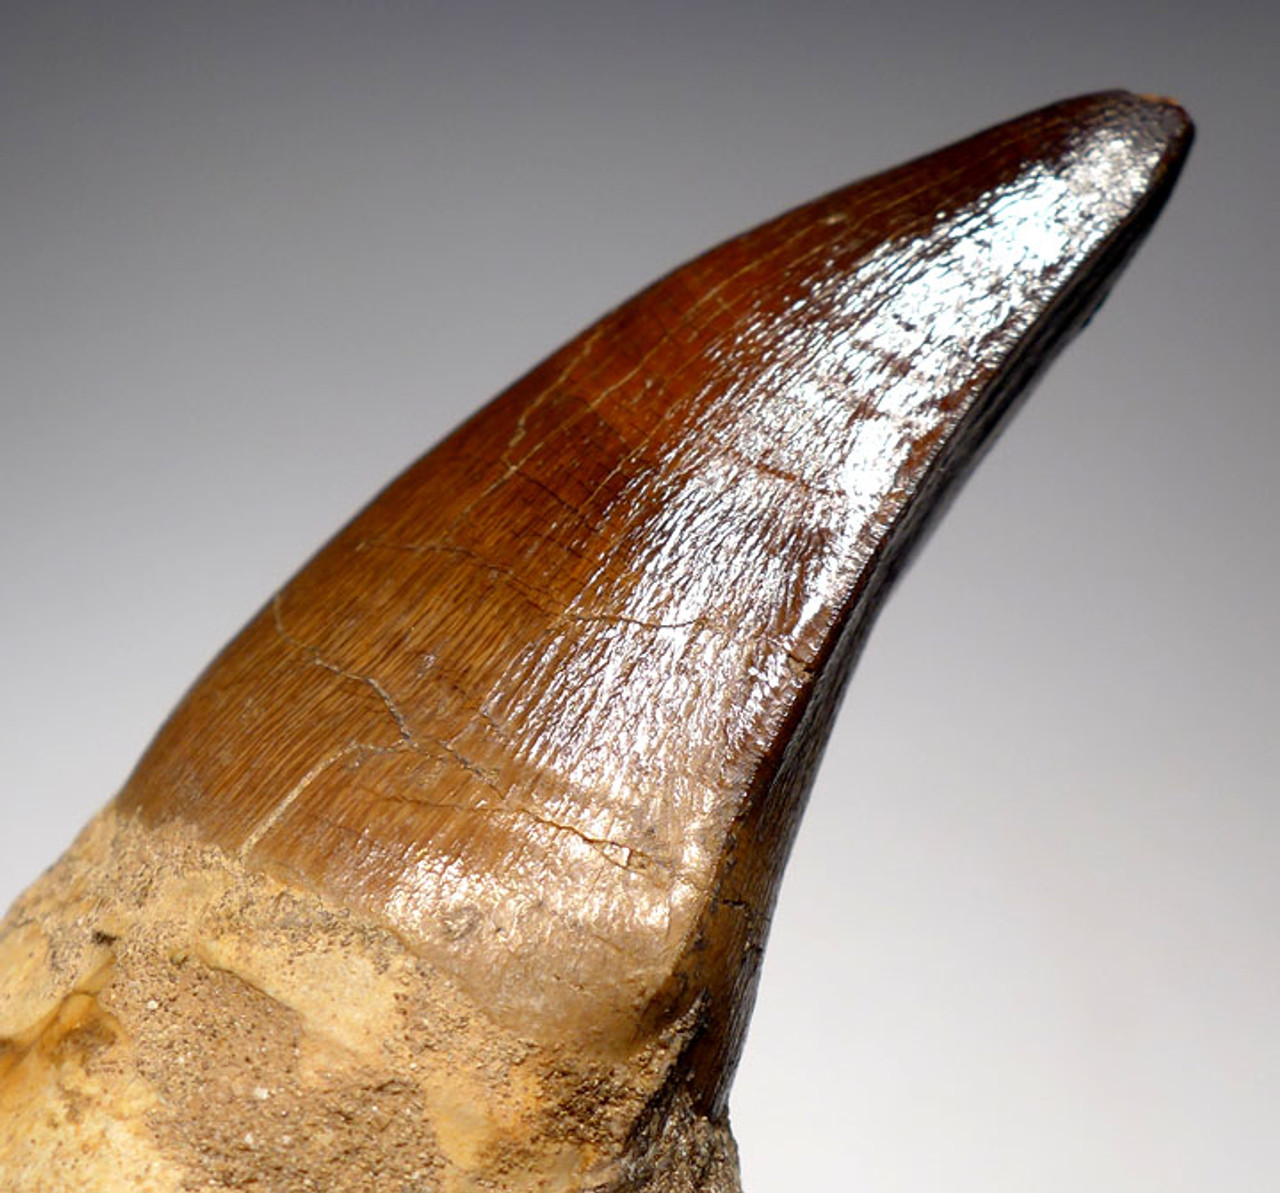 DT1XX02 - LARGE MOSASAUR TOOTH WITH ORIGINAL ROOT AND JAW BONE